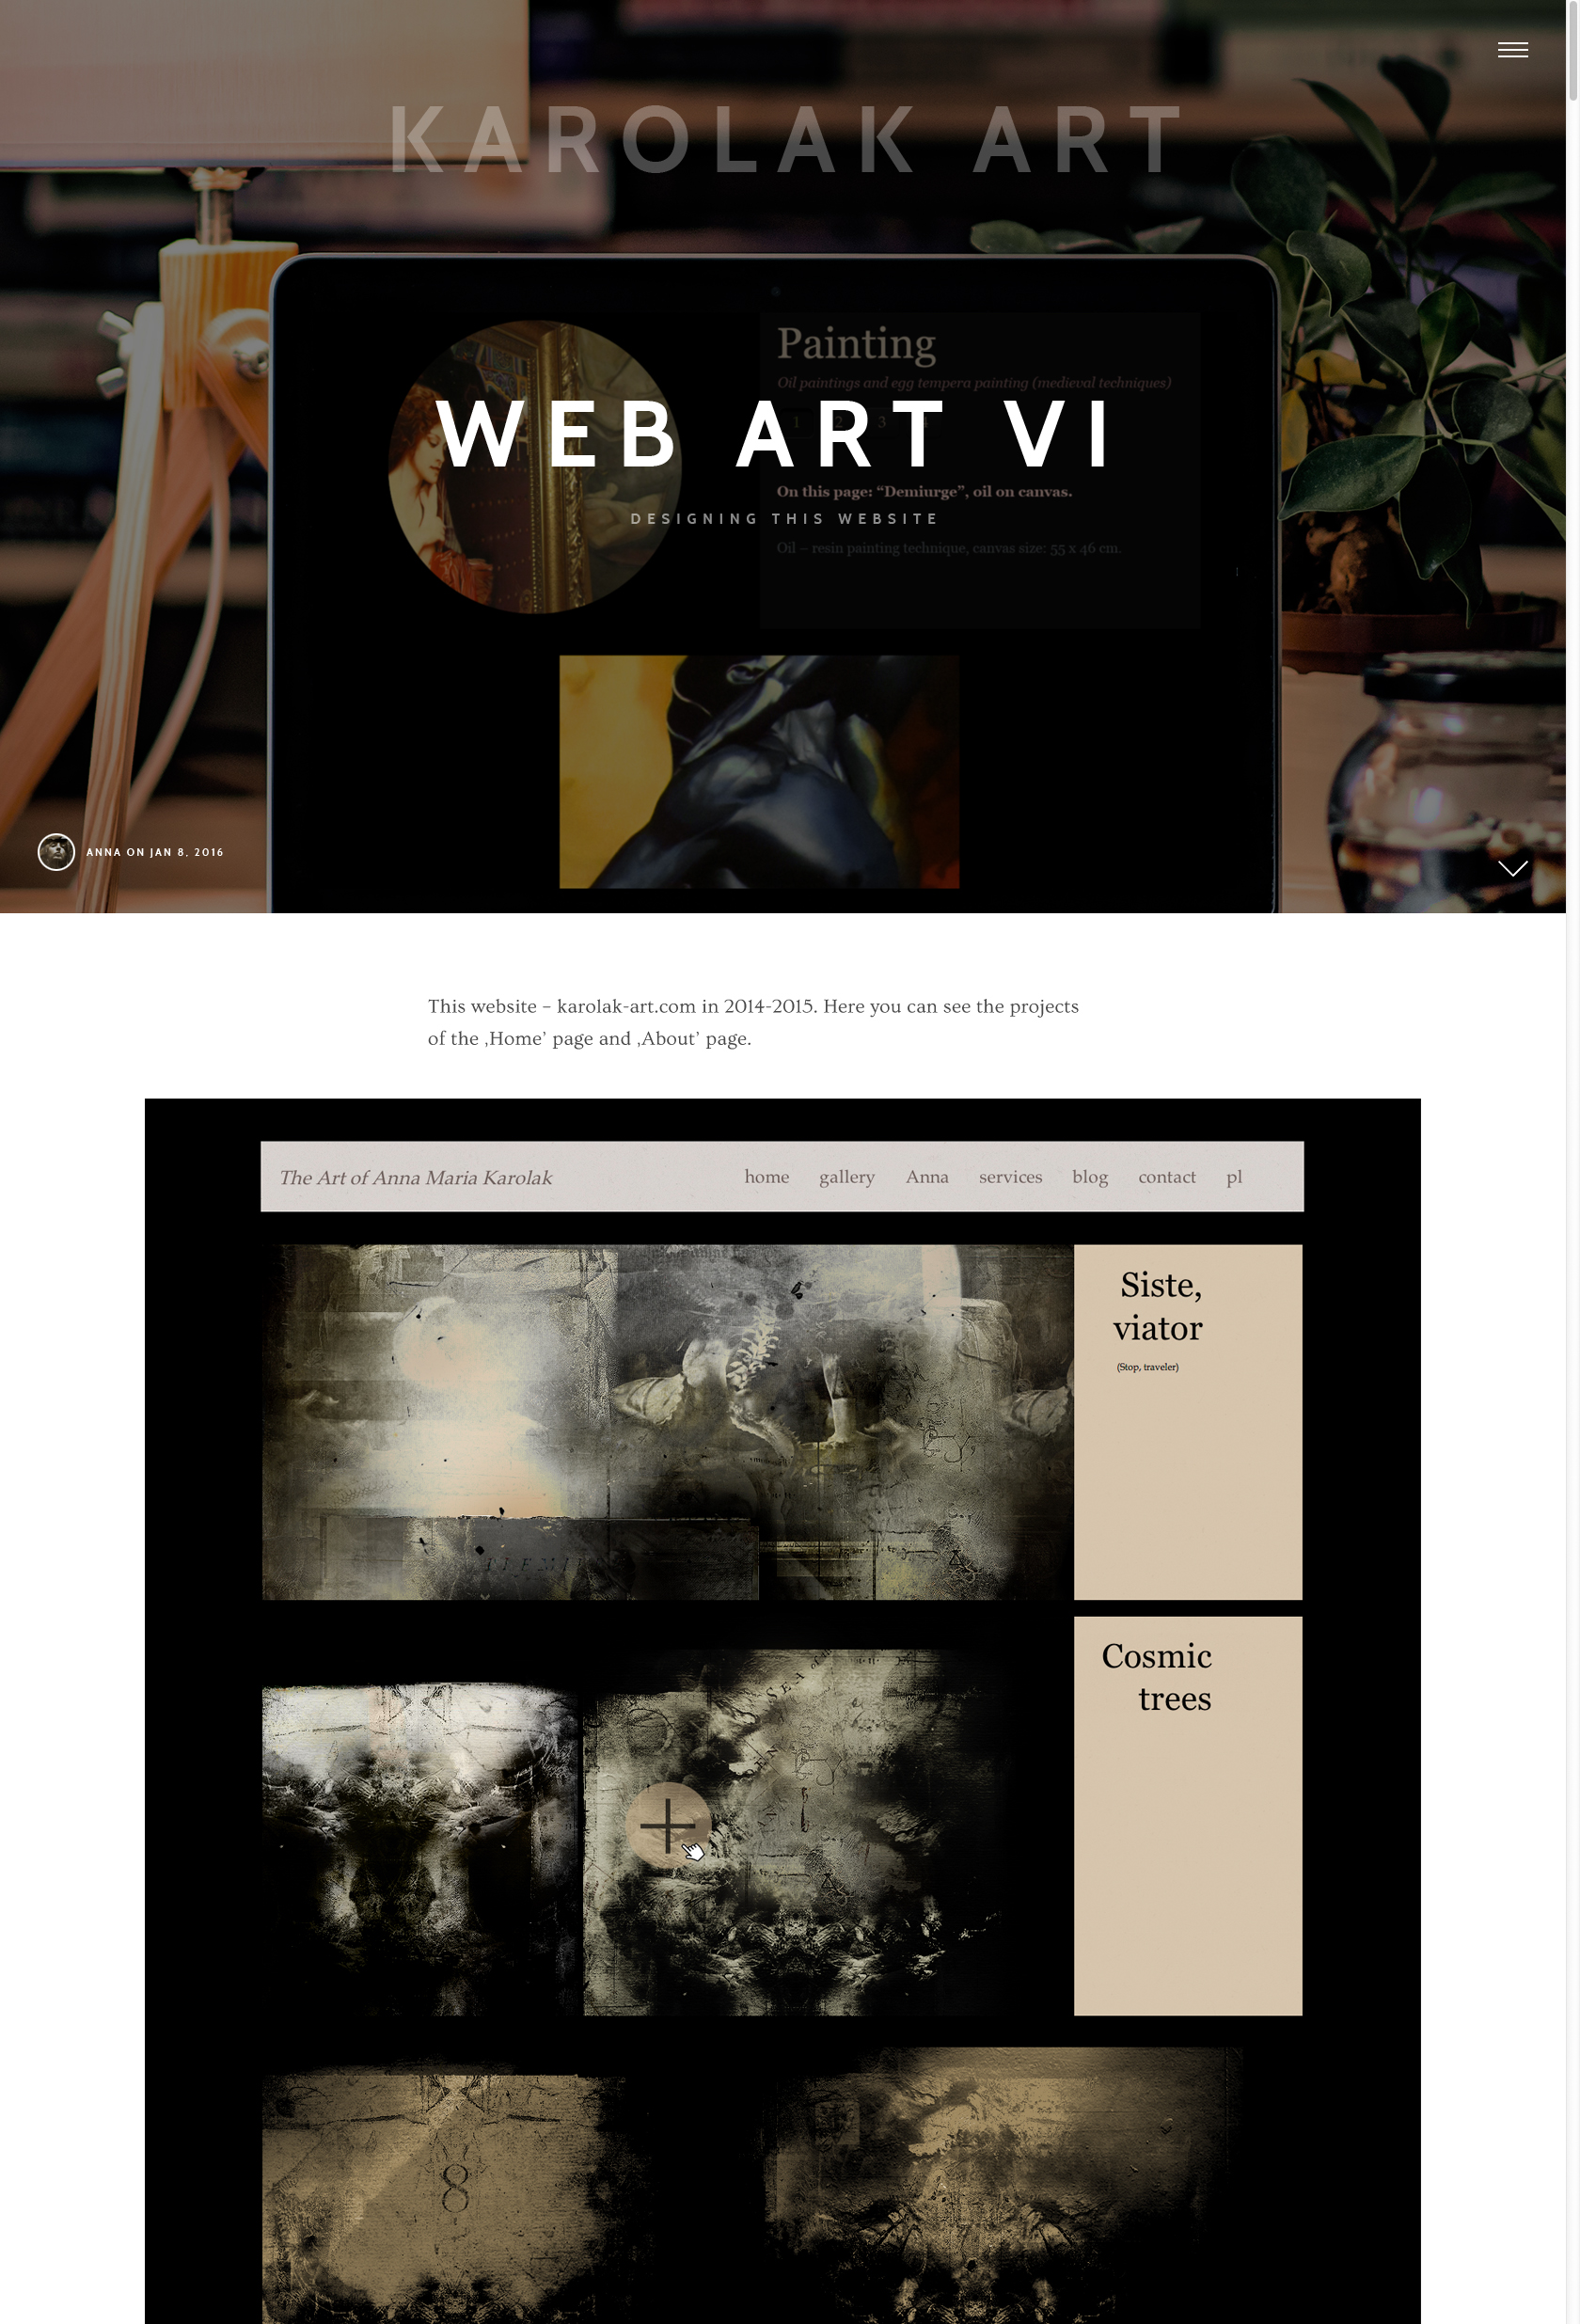 Artistic Website Layout, the Example 05: the final project of the fullscreen hero area for one of the single page of this website in 2017, the fragment. Artistic Web Design - Art Portfolio Website.